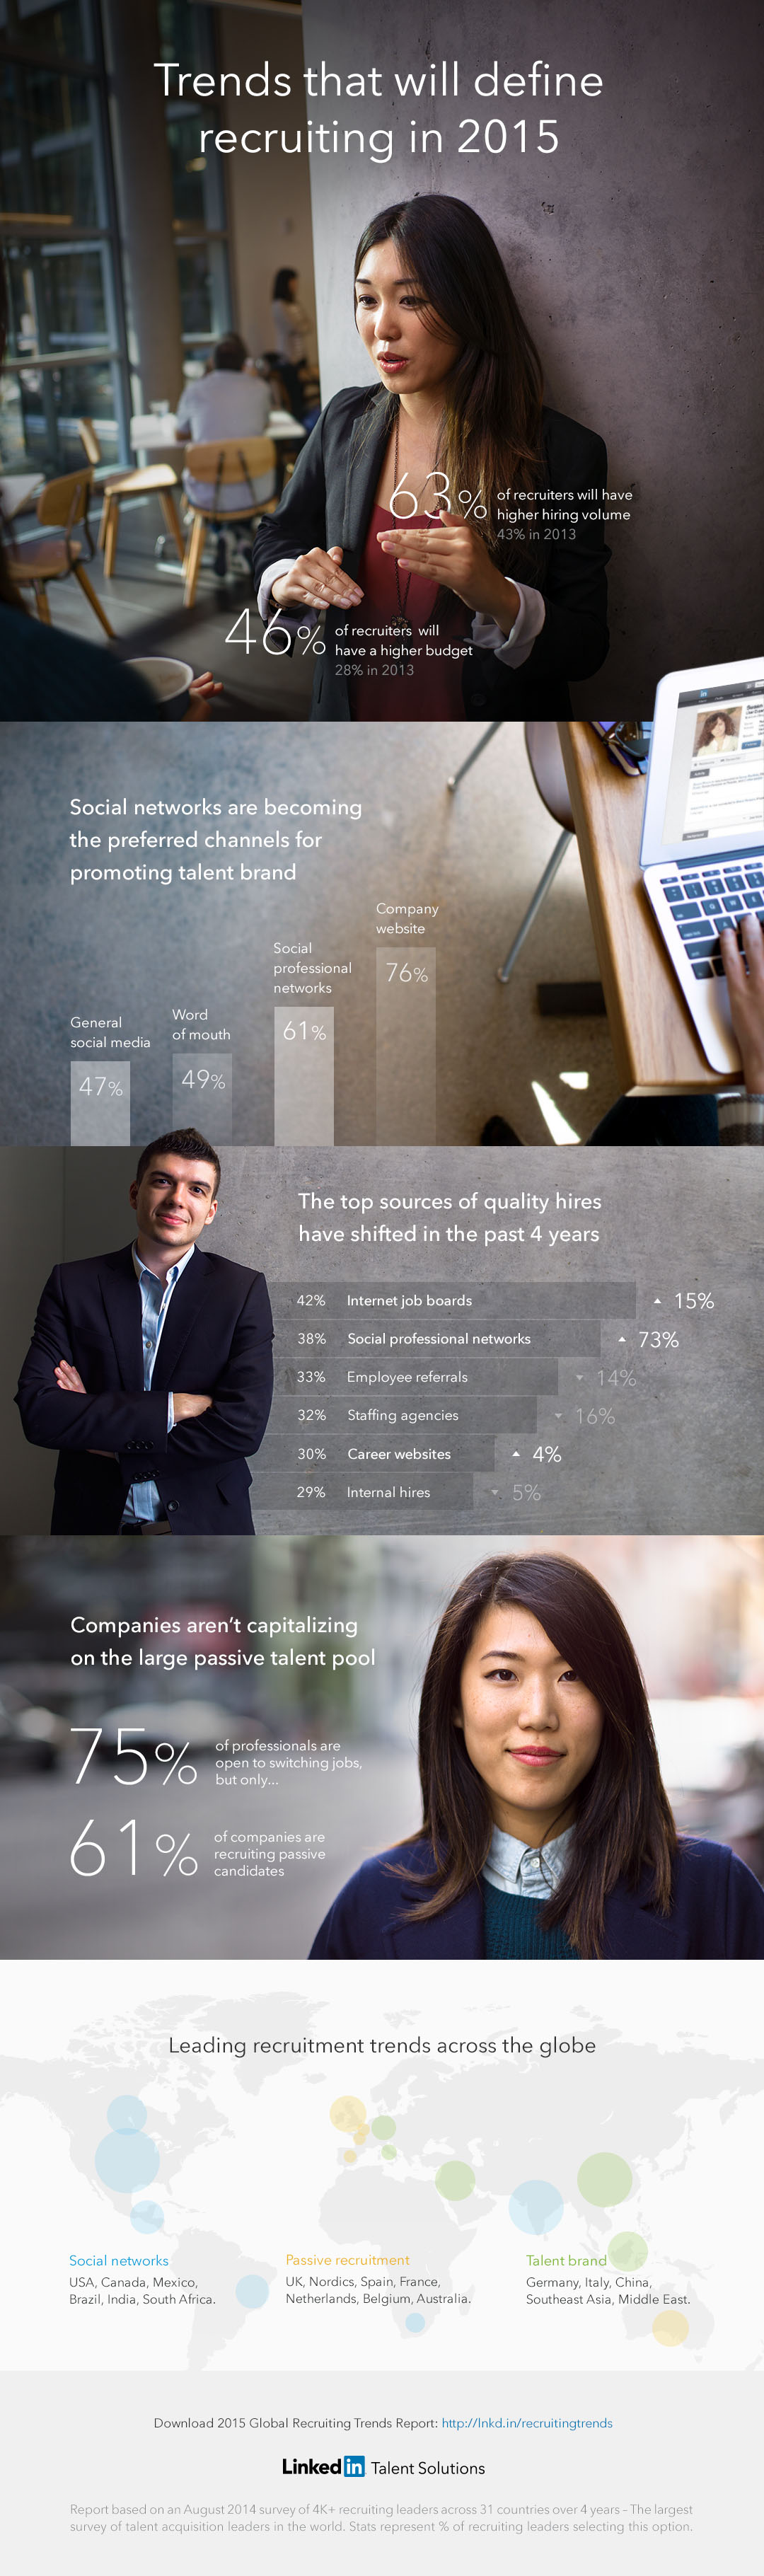 global recruiting trends 2015 infographic